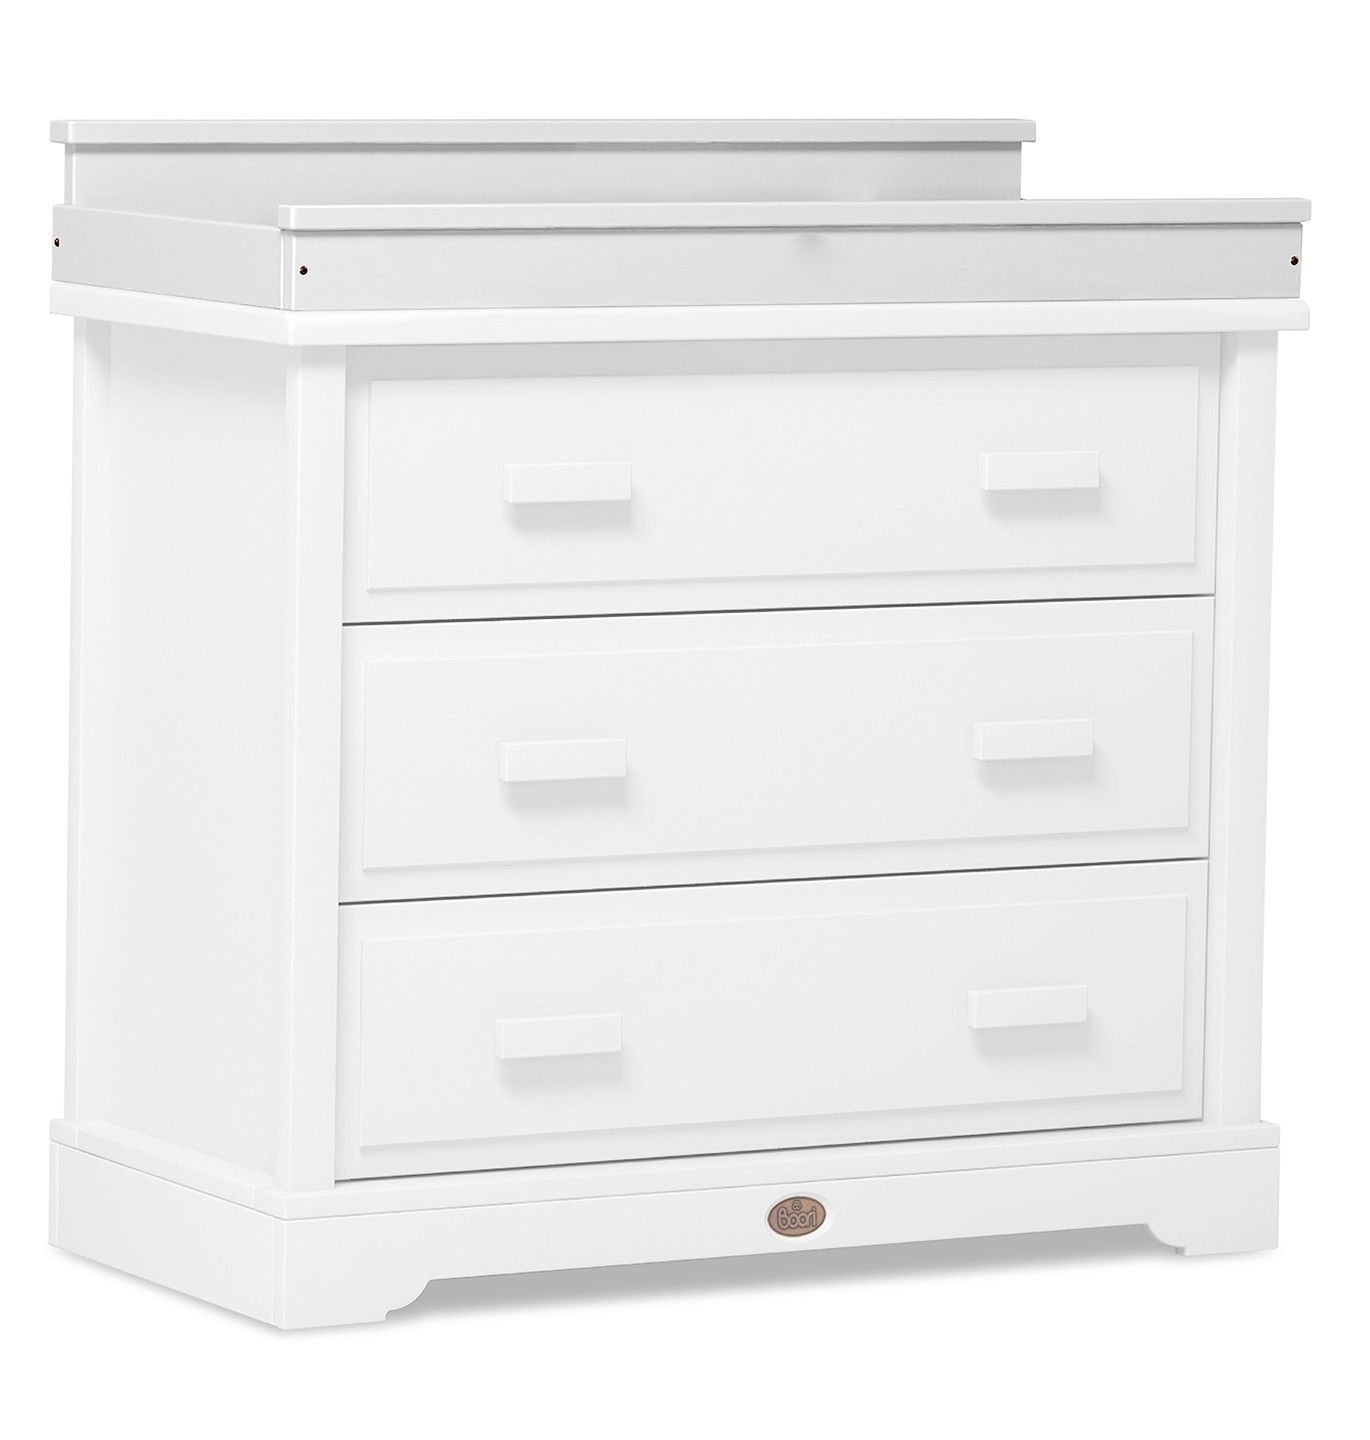 Boori Drawer Change Table samhosted Pinterest